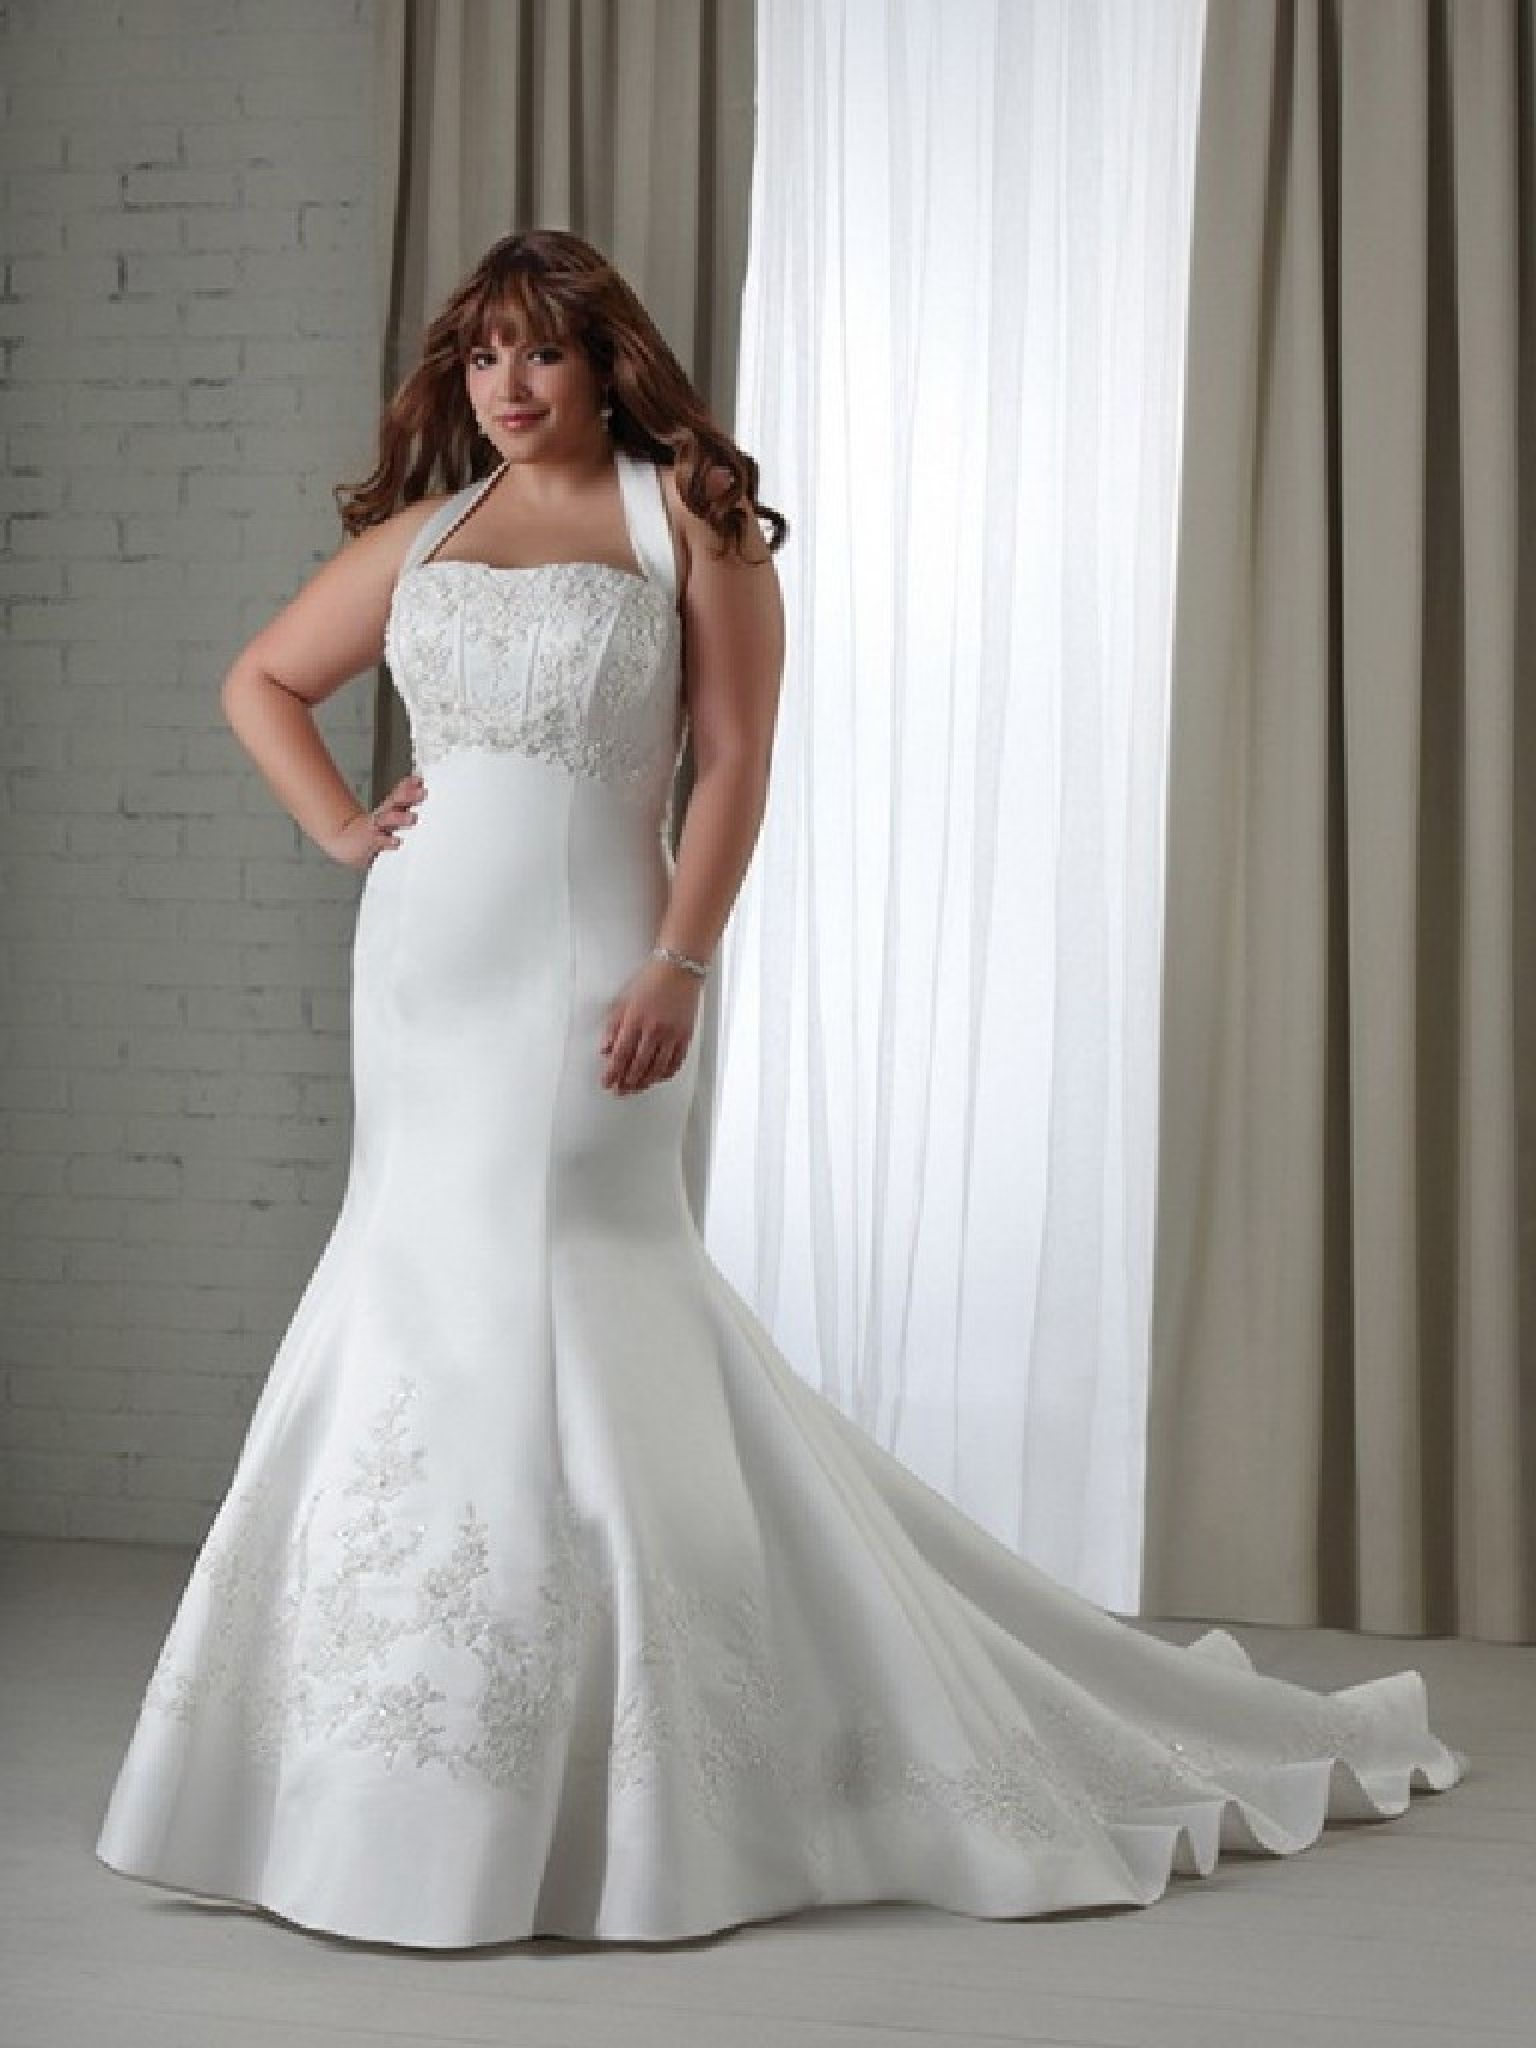 Cheap wedding dresses plus size for under 100 dress for country cheap wedding dresses plus size for under 100 dress for country wedding guest check more junglespirit Images